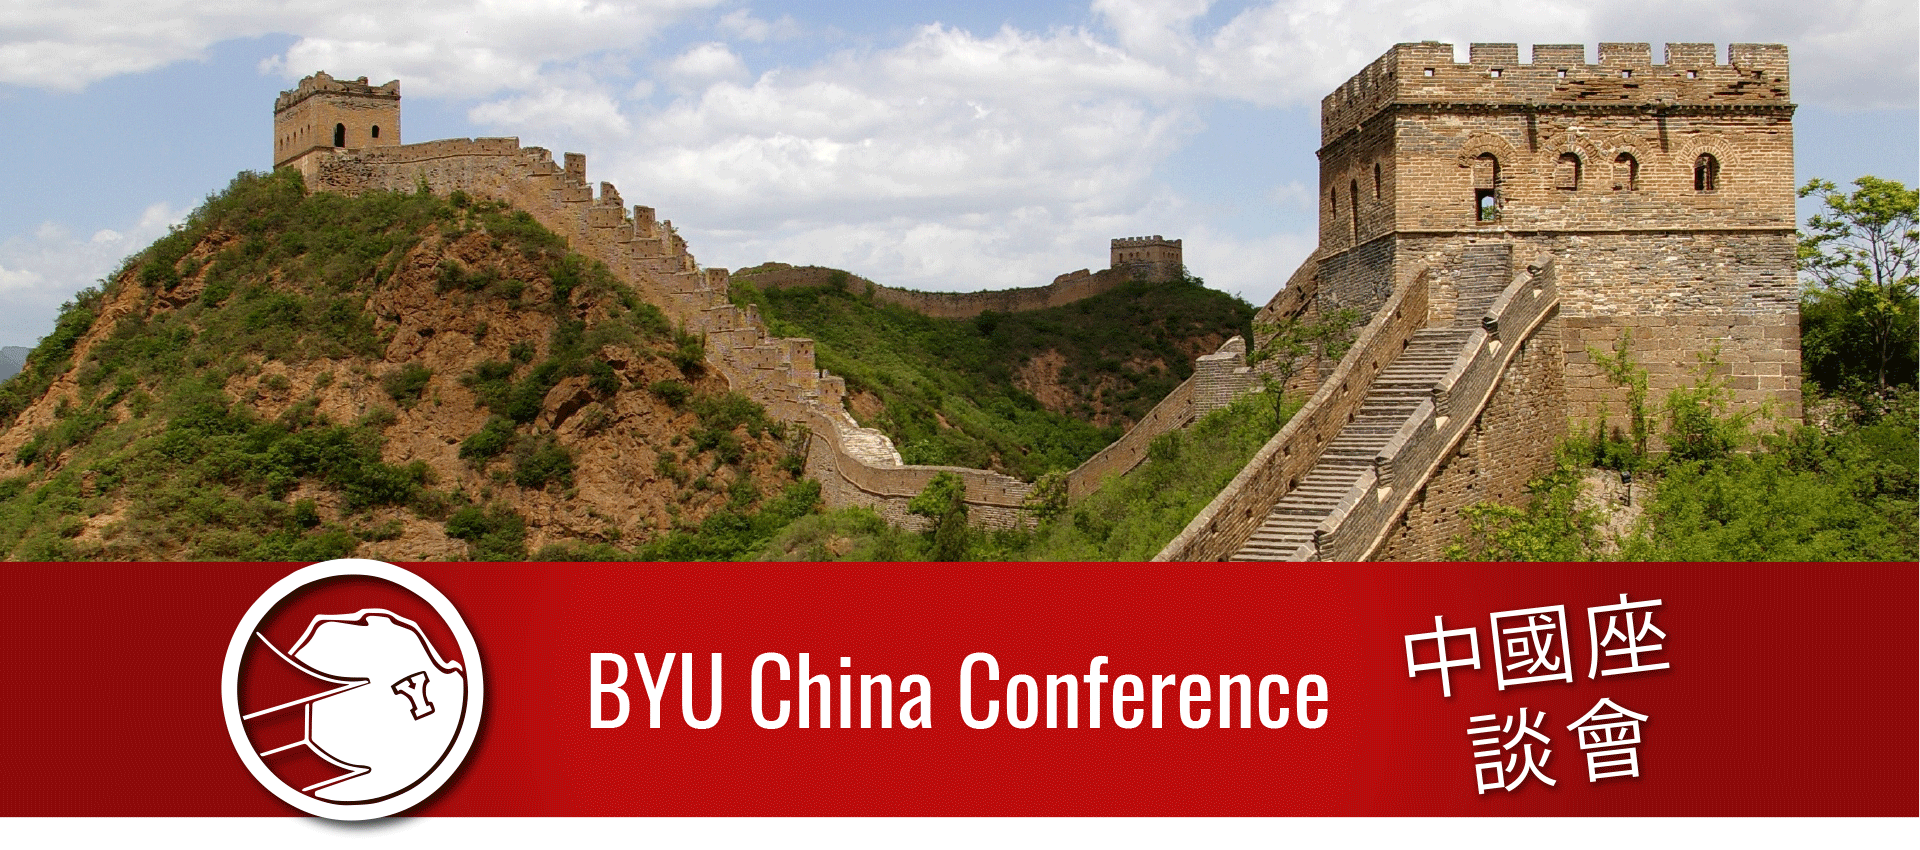 Banner of BYU China Conference and an image of the Great Wall of China